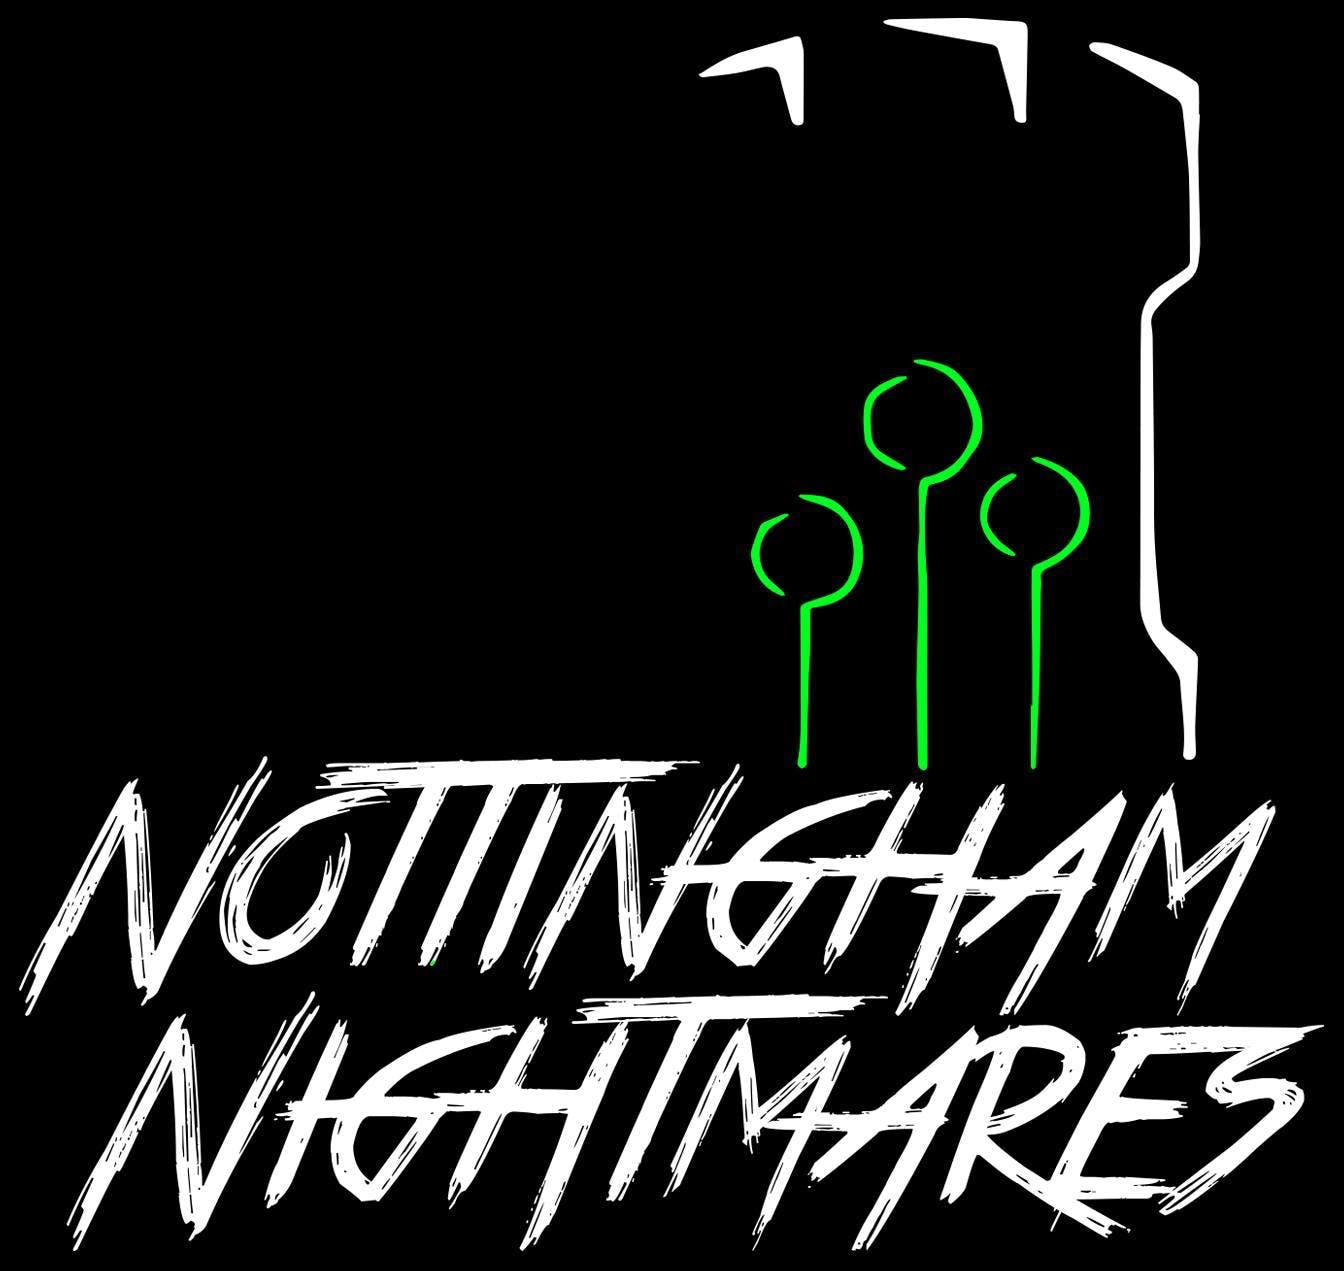 Nottingham Nightmares logo